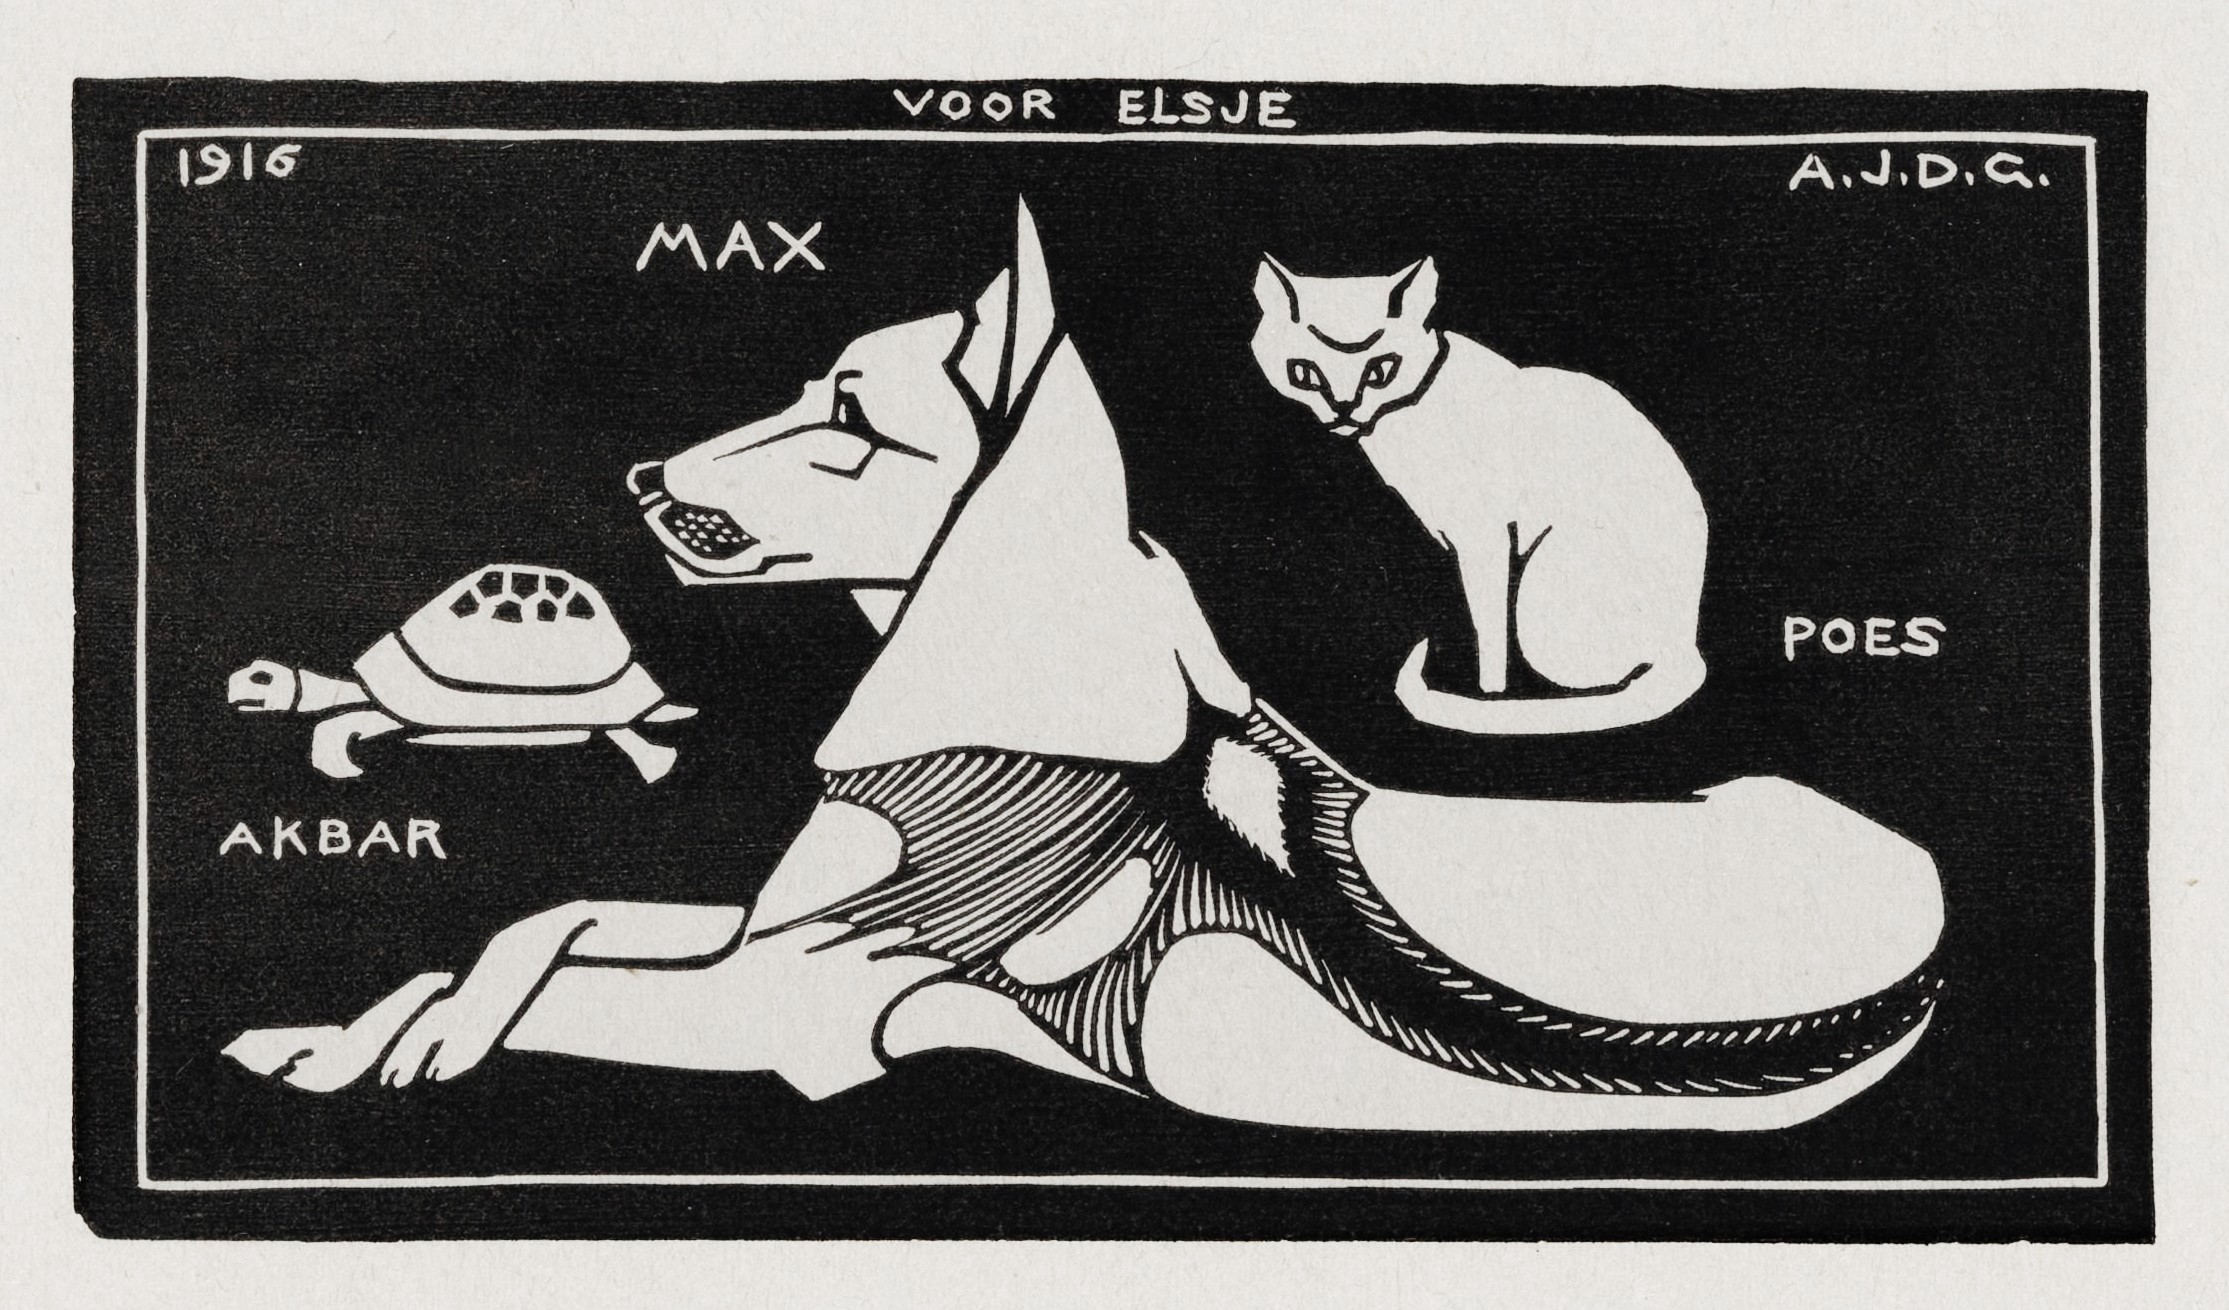 Black-and-white woodcut print of a tortoise named Akbar, a dog named Max, and a cat named Puss. The text is in Dutch.